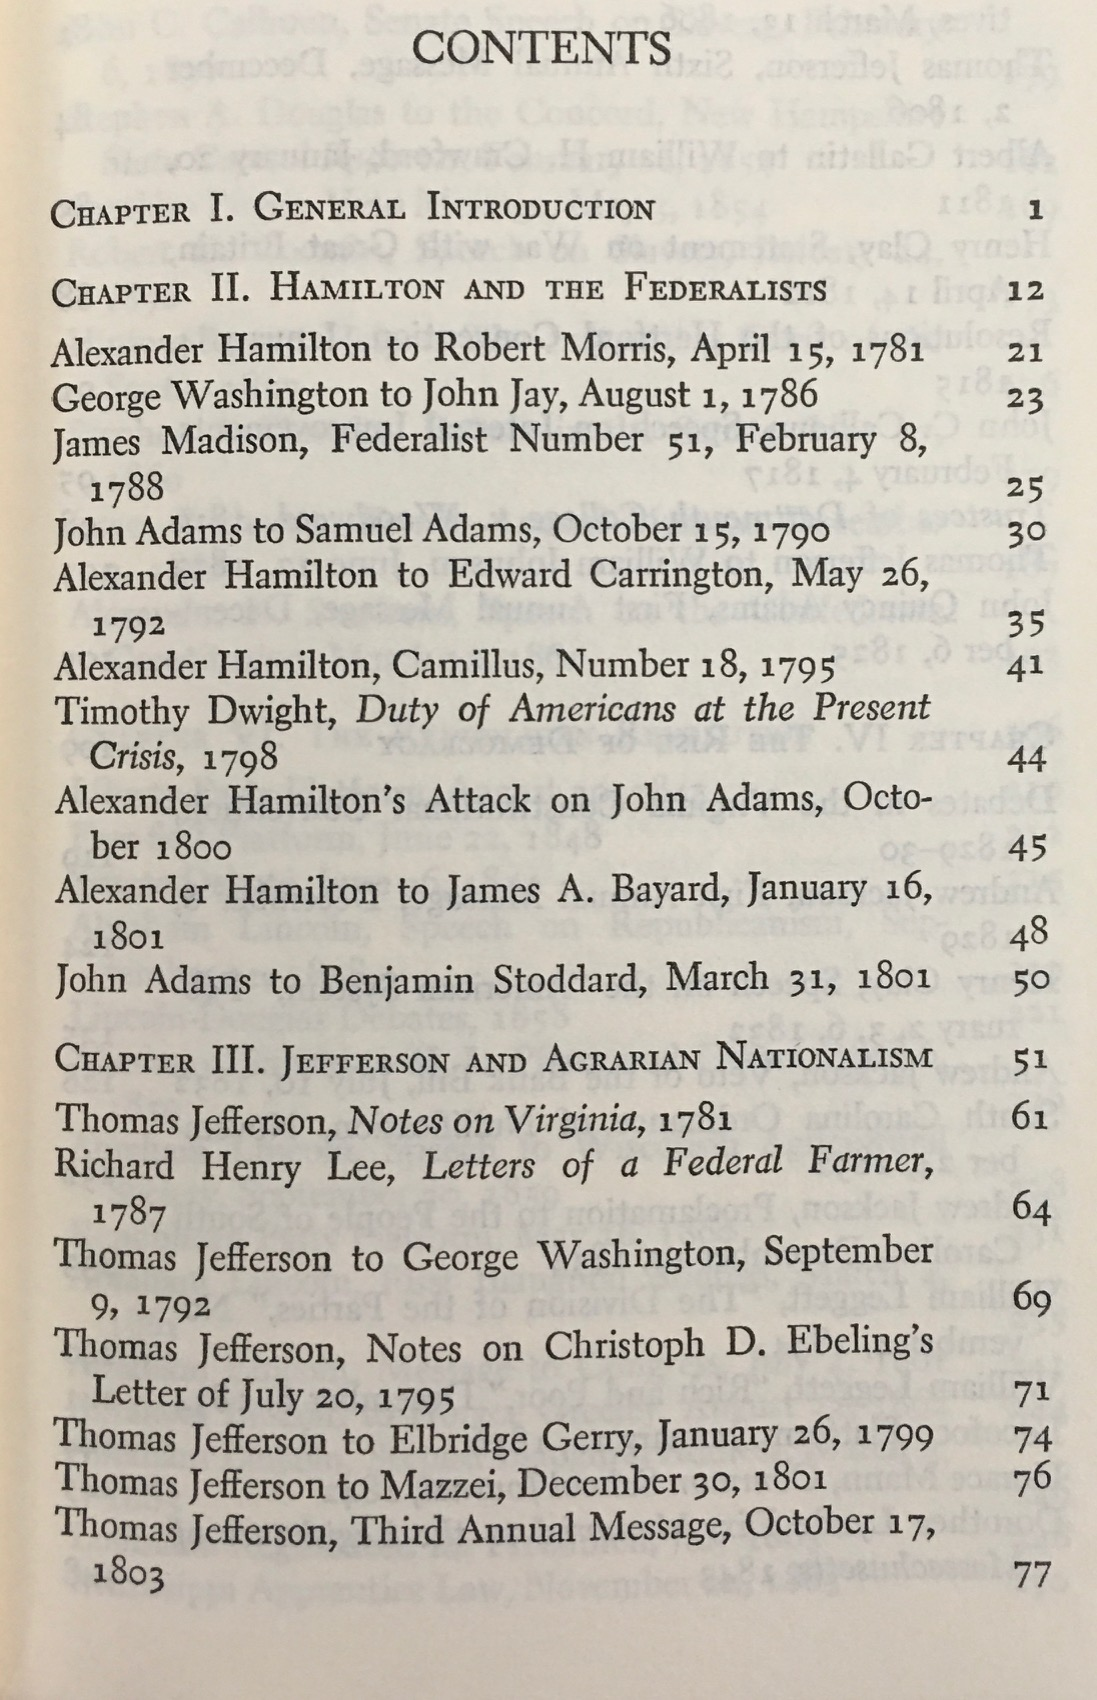 Image for The Jeffersonian and Hamiltonian Traditions in American Politics - A Documentary History (Anchor A464)